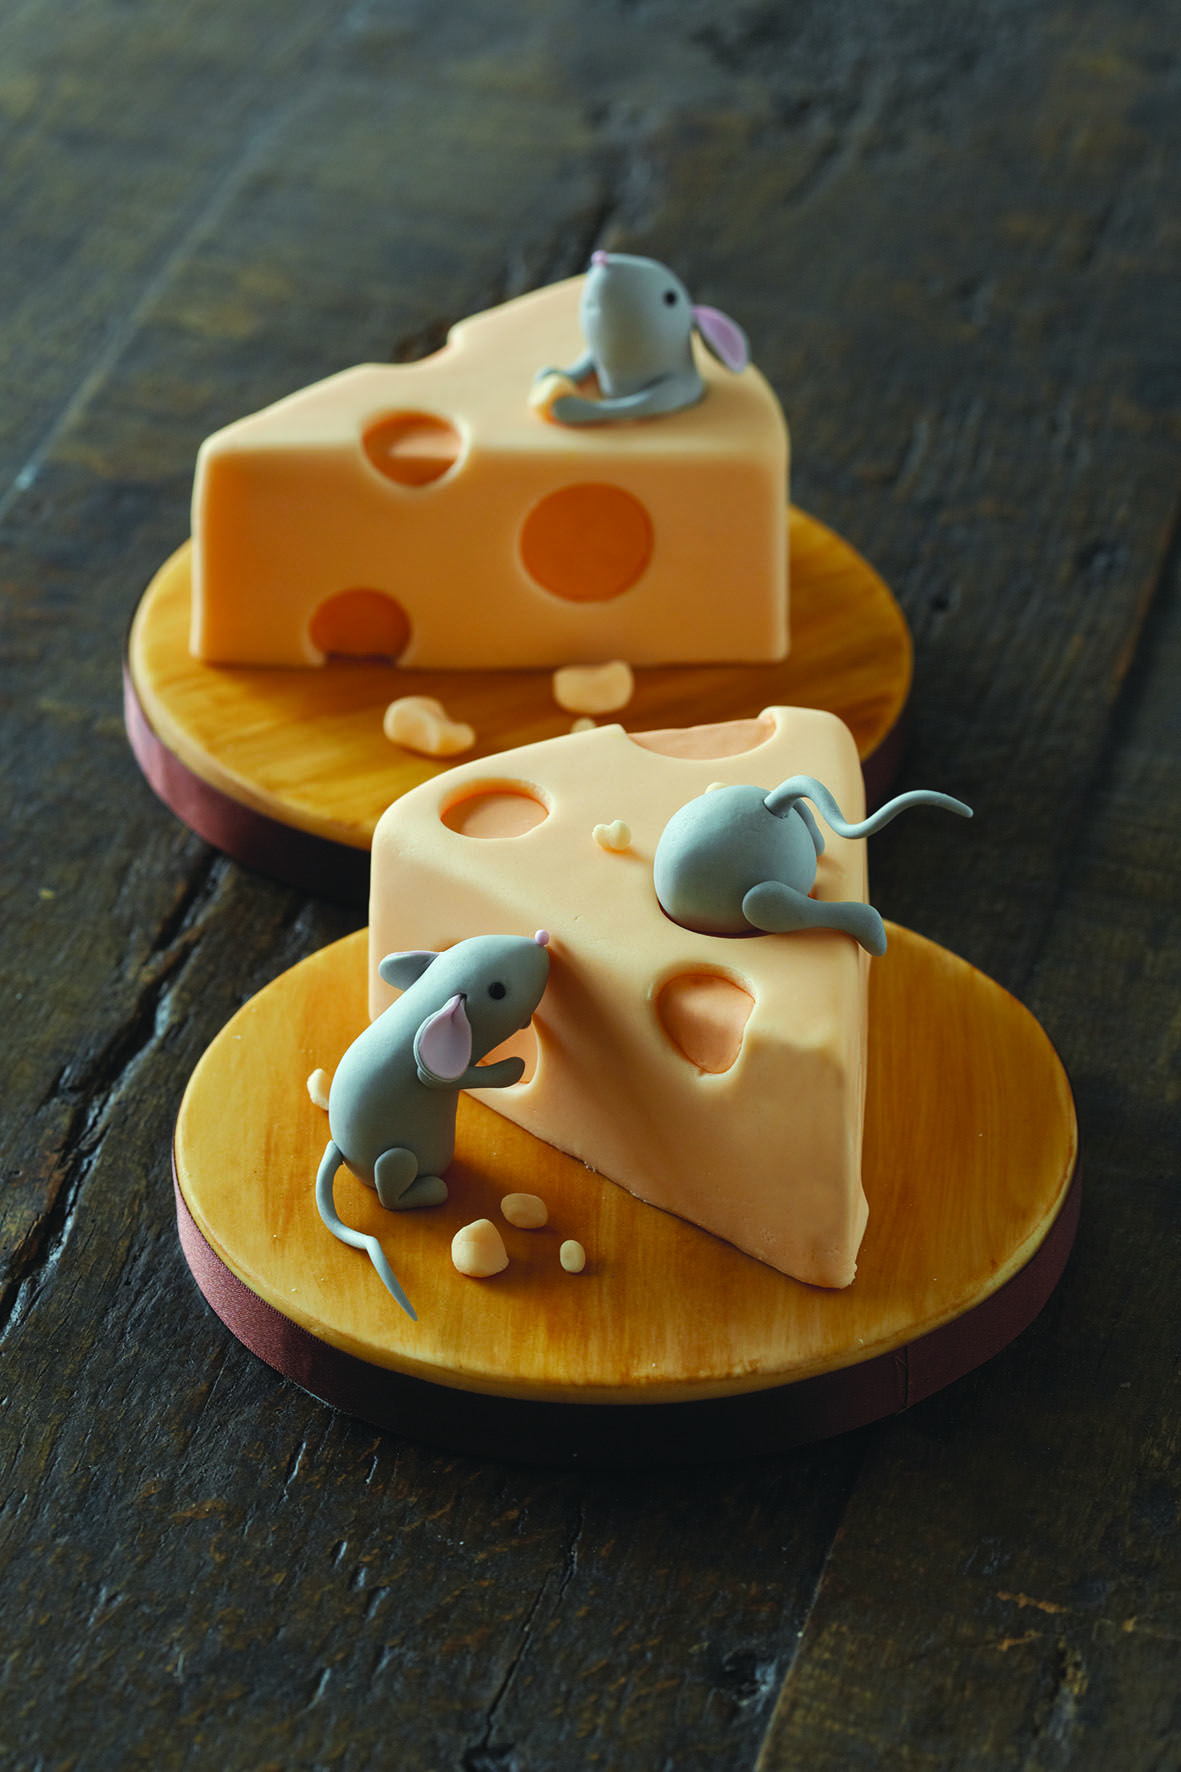 Www Cakecoachonline Com Sharing Mice With Cheese Cakes